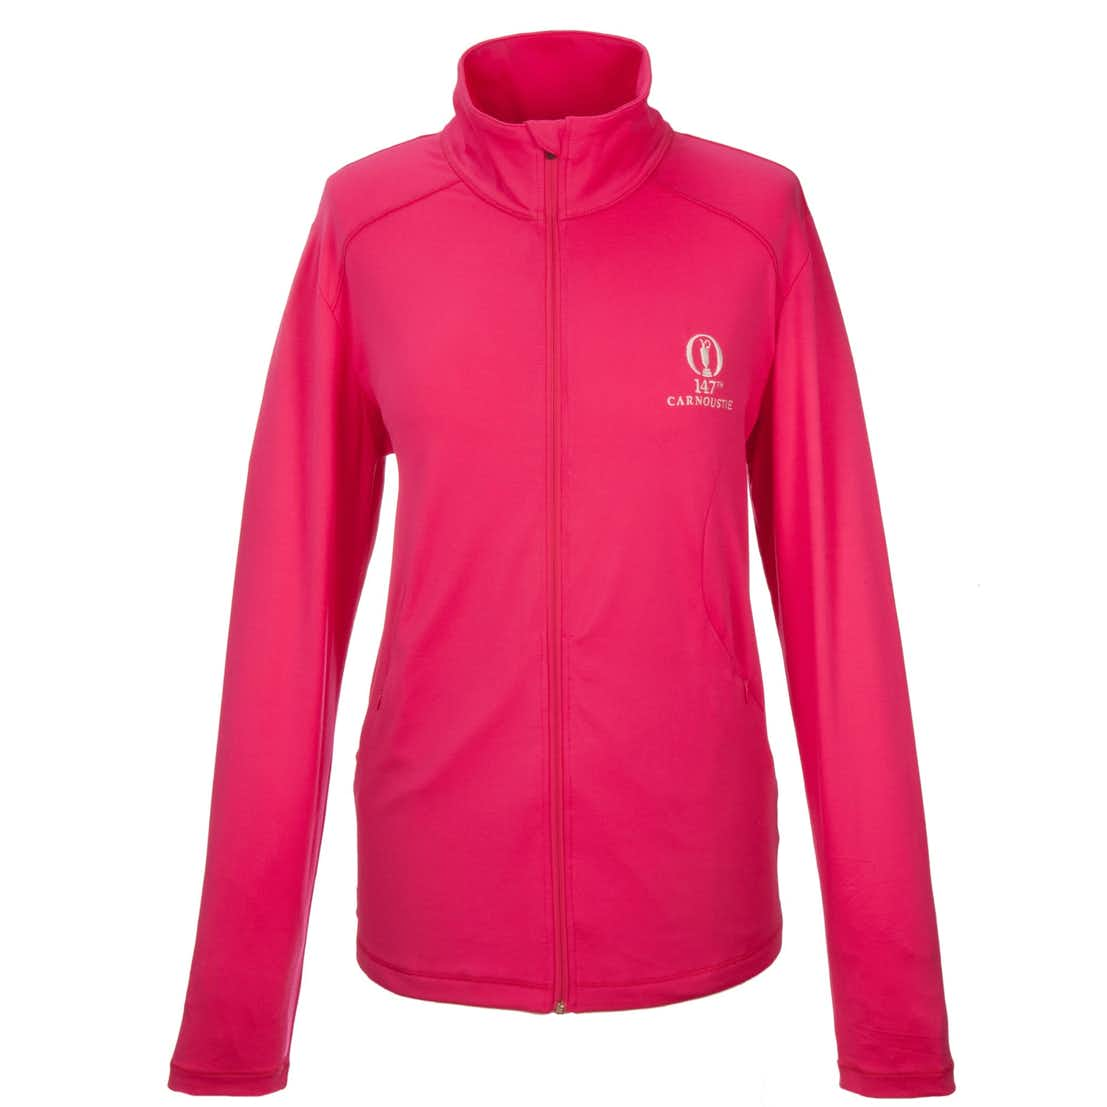 147th Carnoustie Kate Lord Jacket - Pink